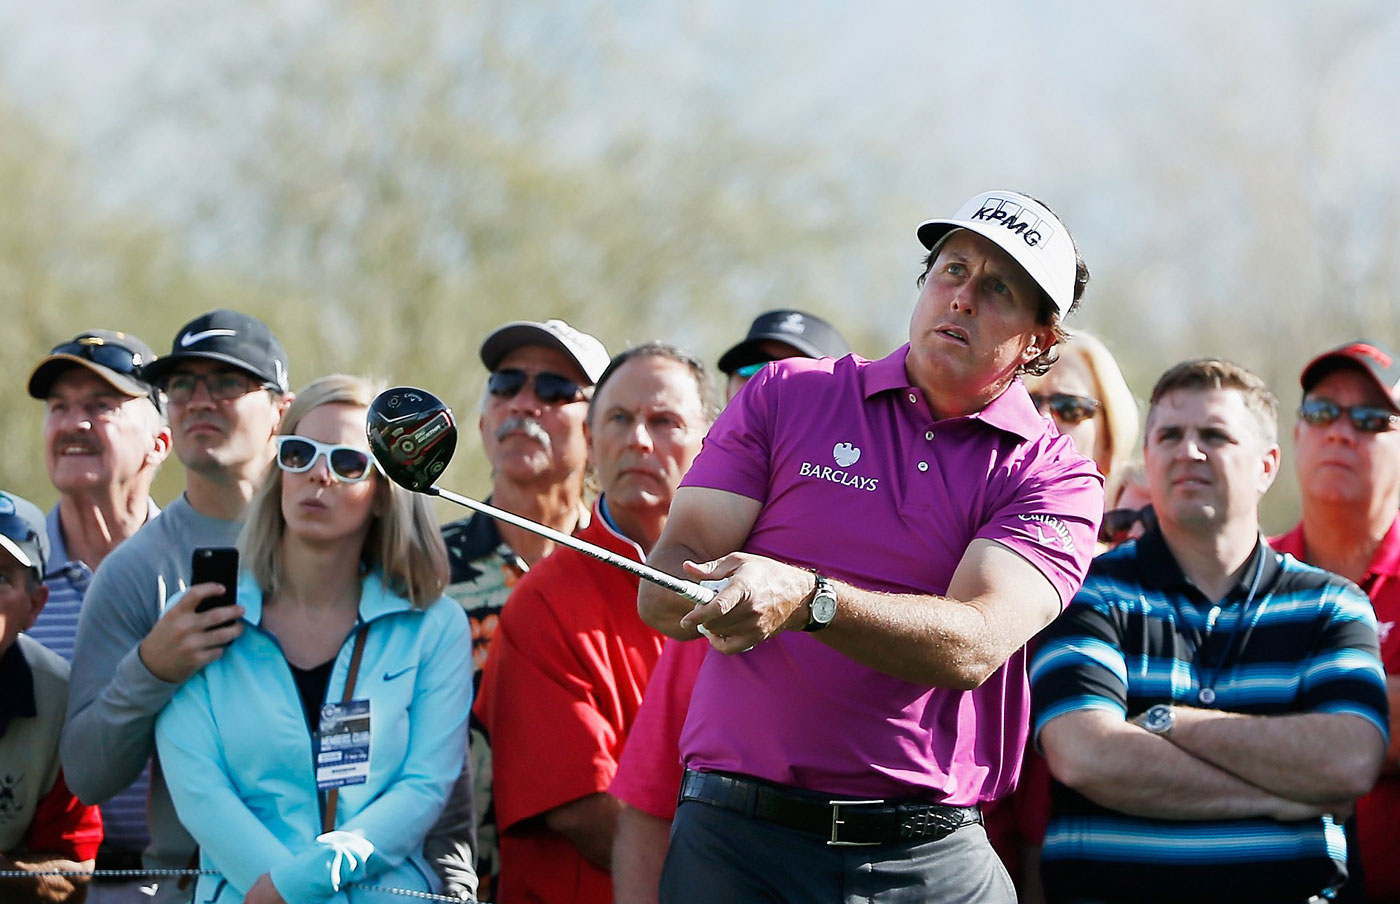 Phil Mickelson shot 76 to miss the cut at the Waste Management Phoenix Open.